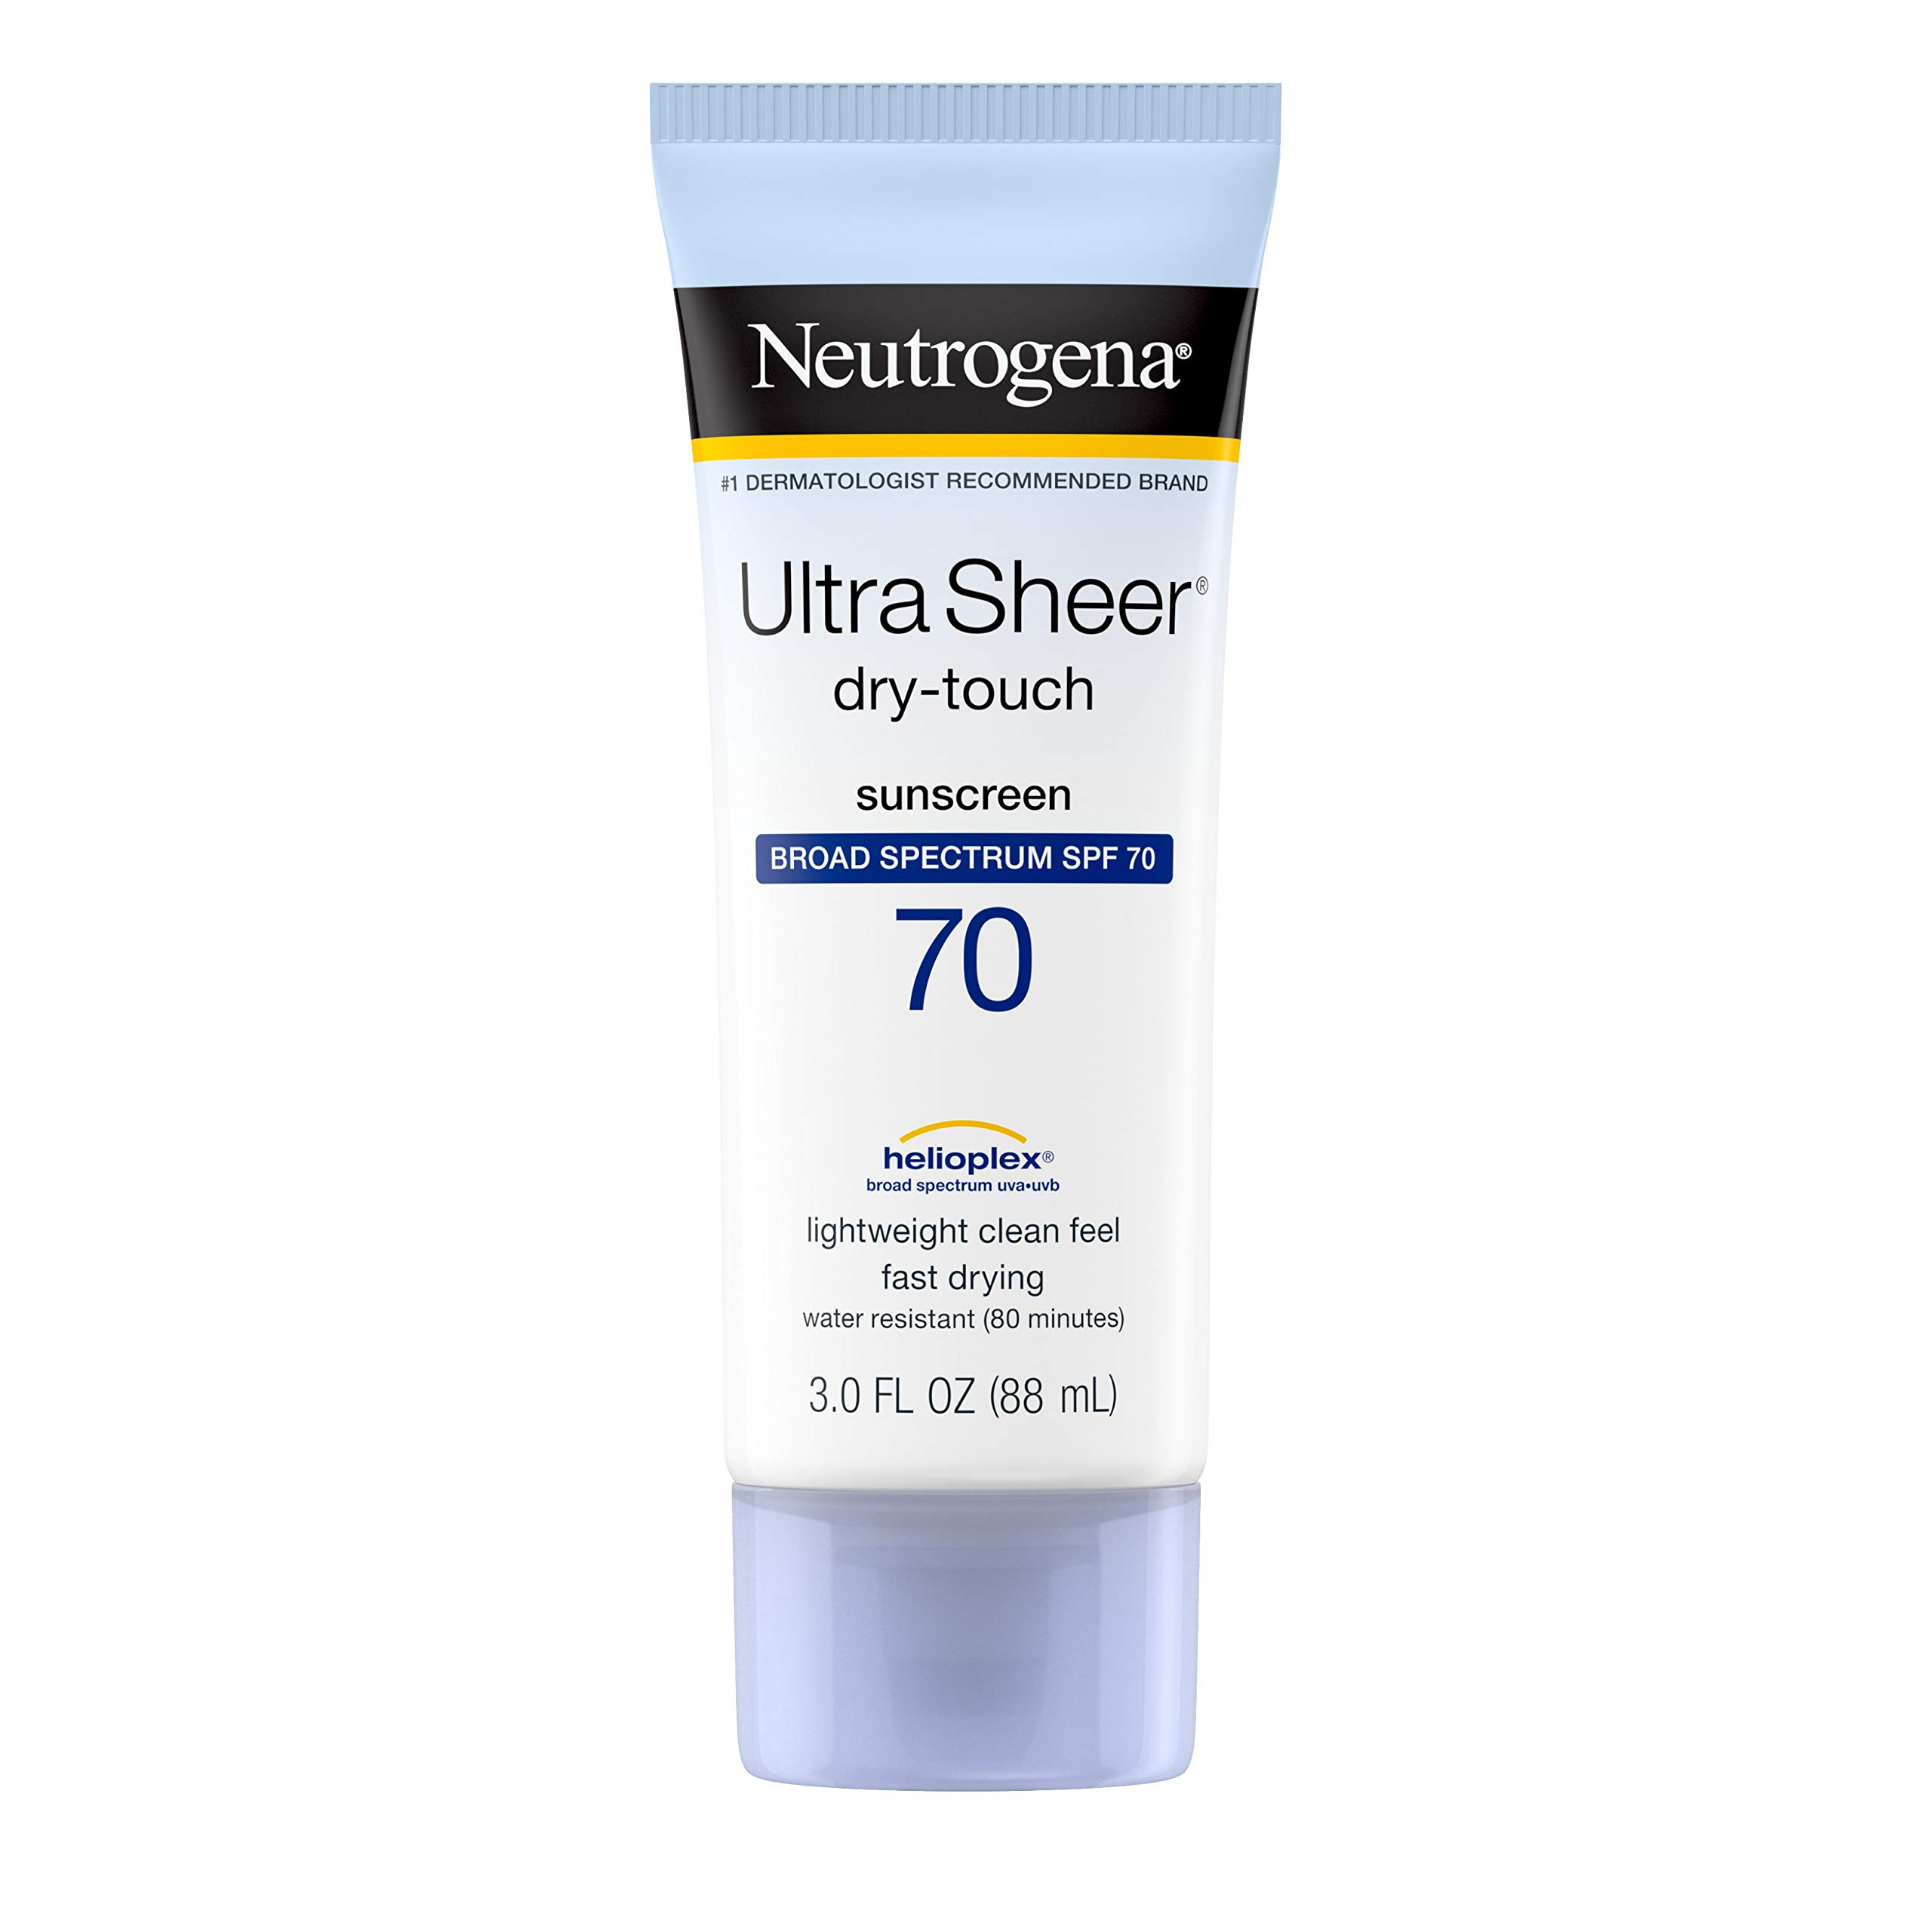 Neutrogena Ultra Sheer Dry-Touch Sunscreen Lotion, Broad Spectrum SPF 70 UVA/UVB Protection, Lightweight Water Resistant, Non-Comedogenic & Non-Greasy, Travel Size, 3 fl. oz